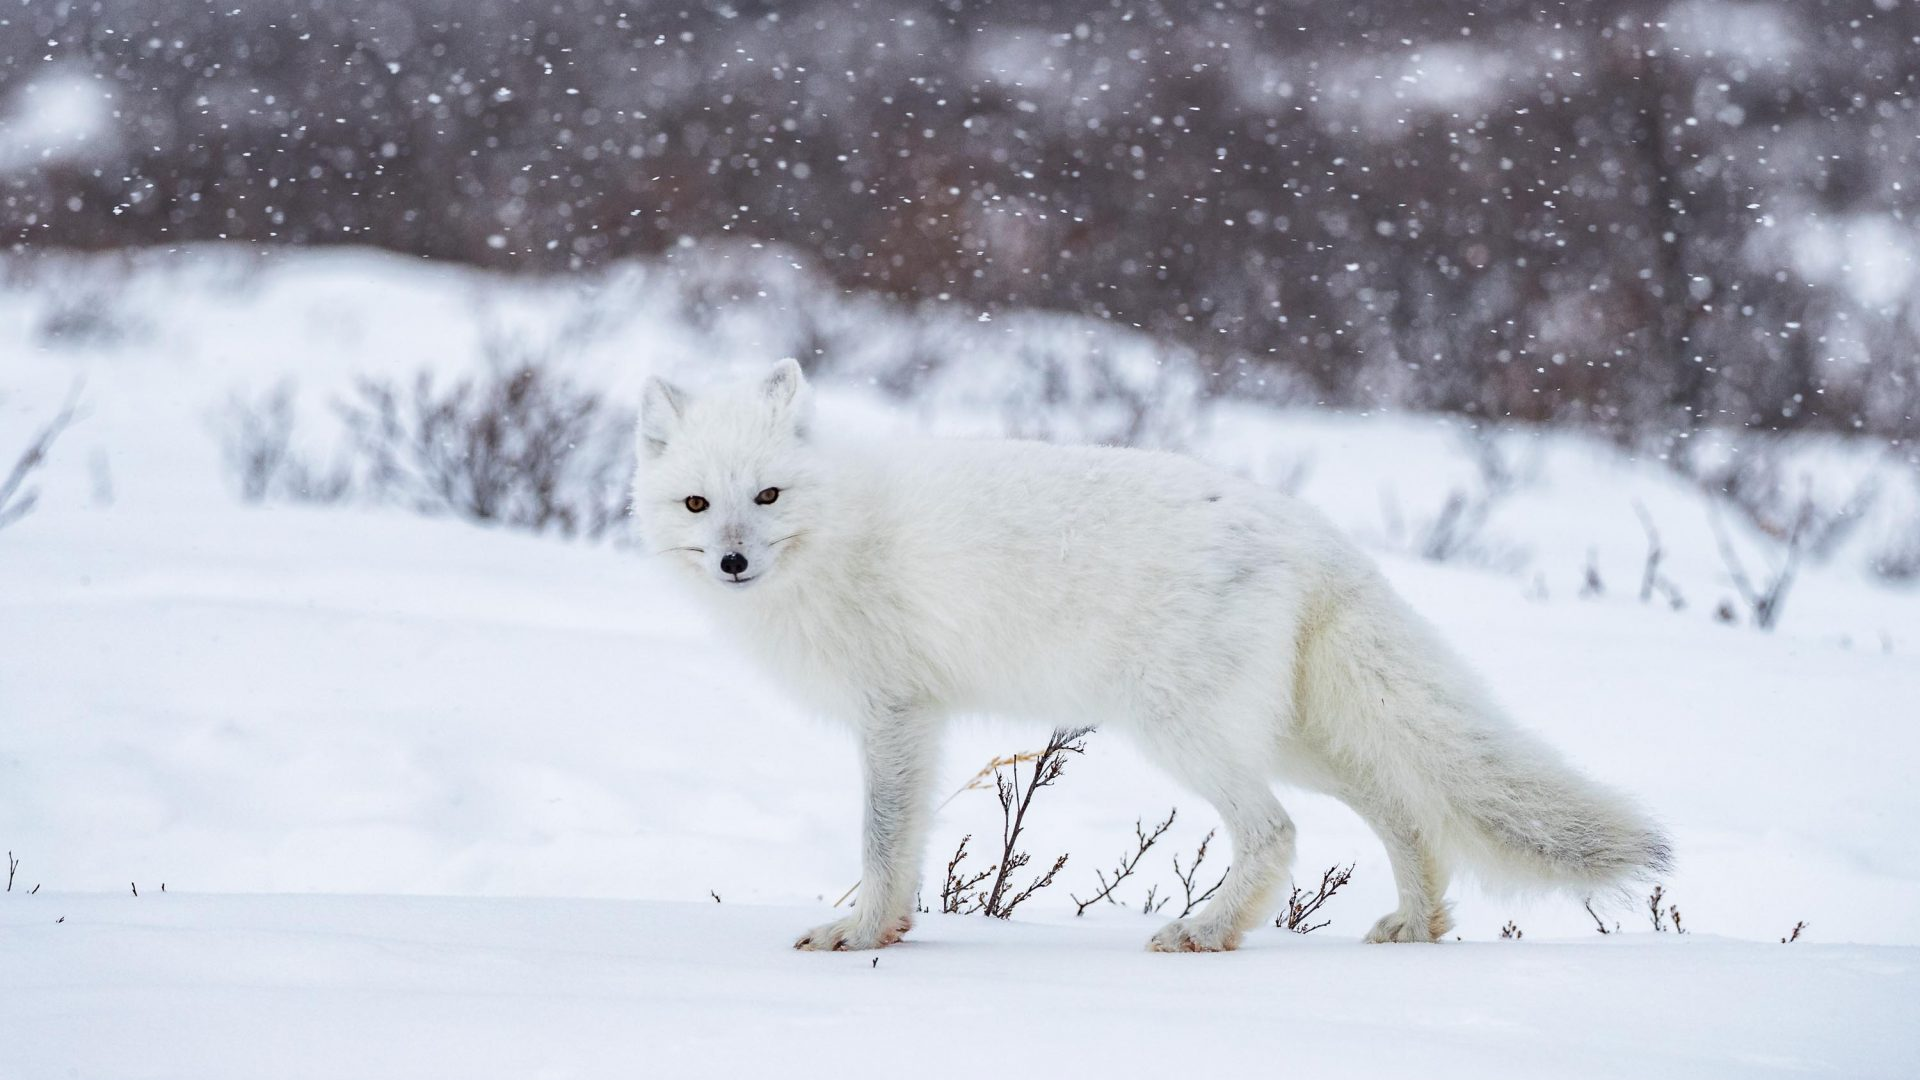 An Arctic fox in Manitoba, Canada. If you look closely, you can see blood on its paws.